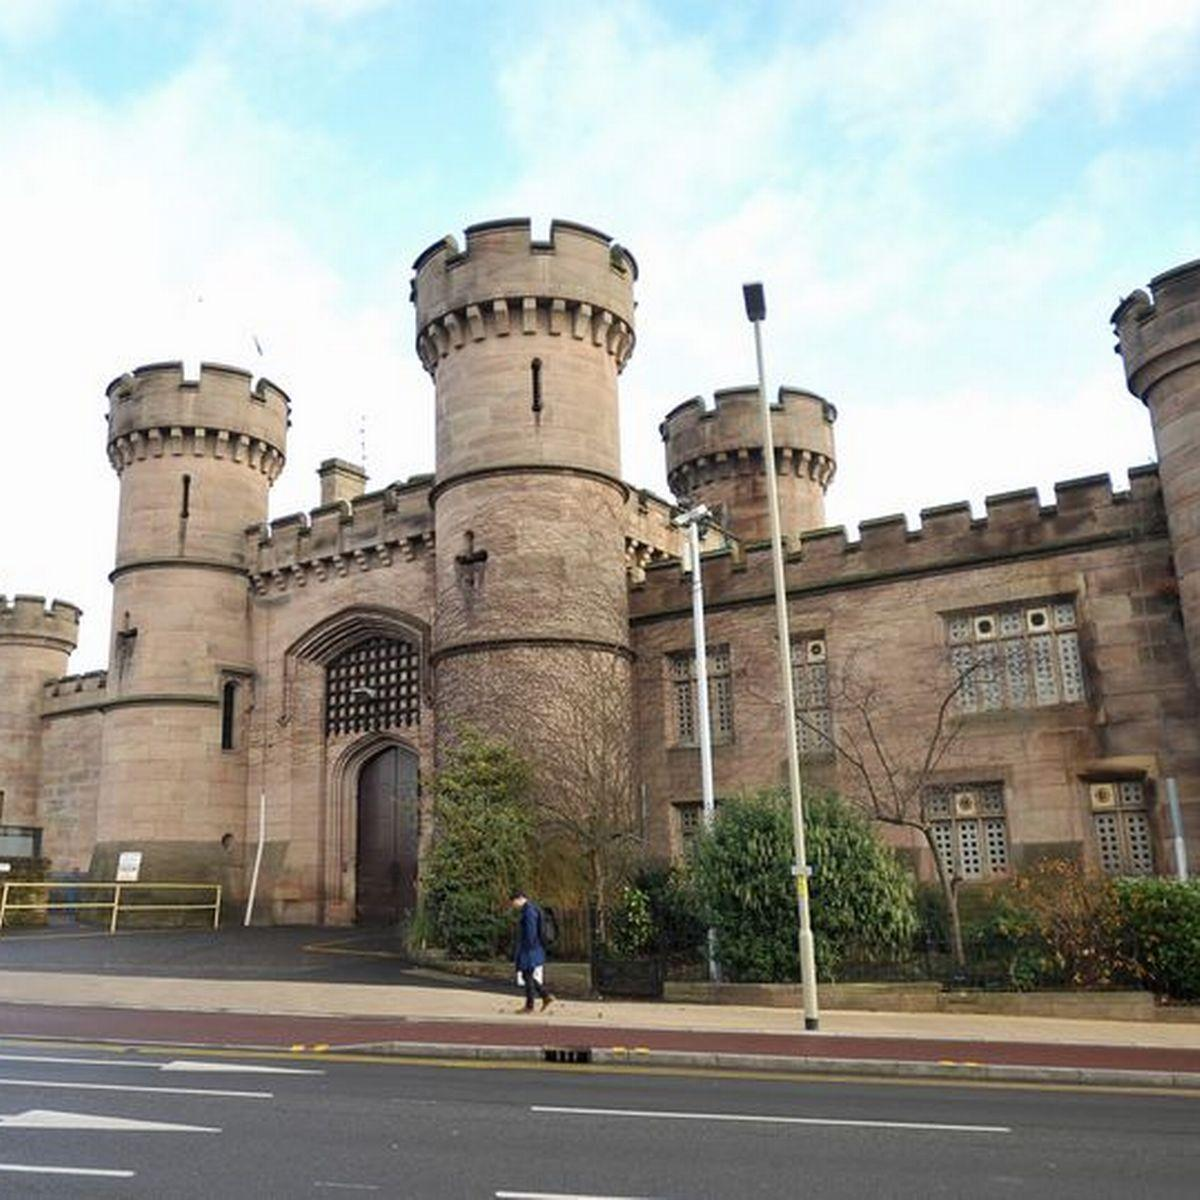 Pictures offer rare glimpse of life behind bars for 300 inmates at tough  Victorian prison - Wales Online